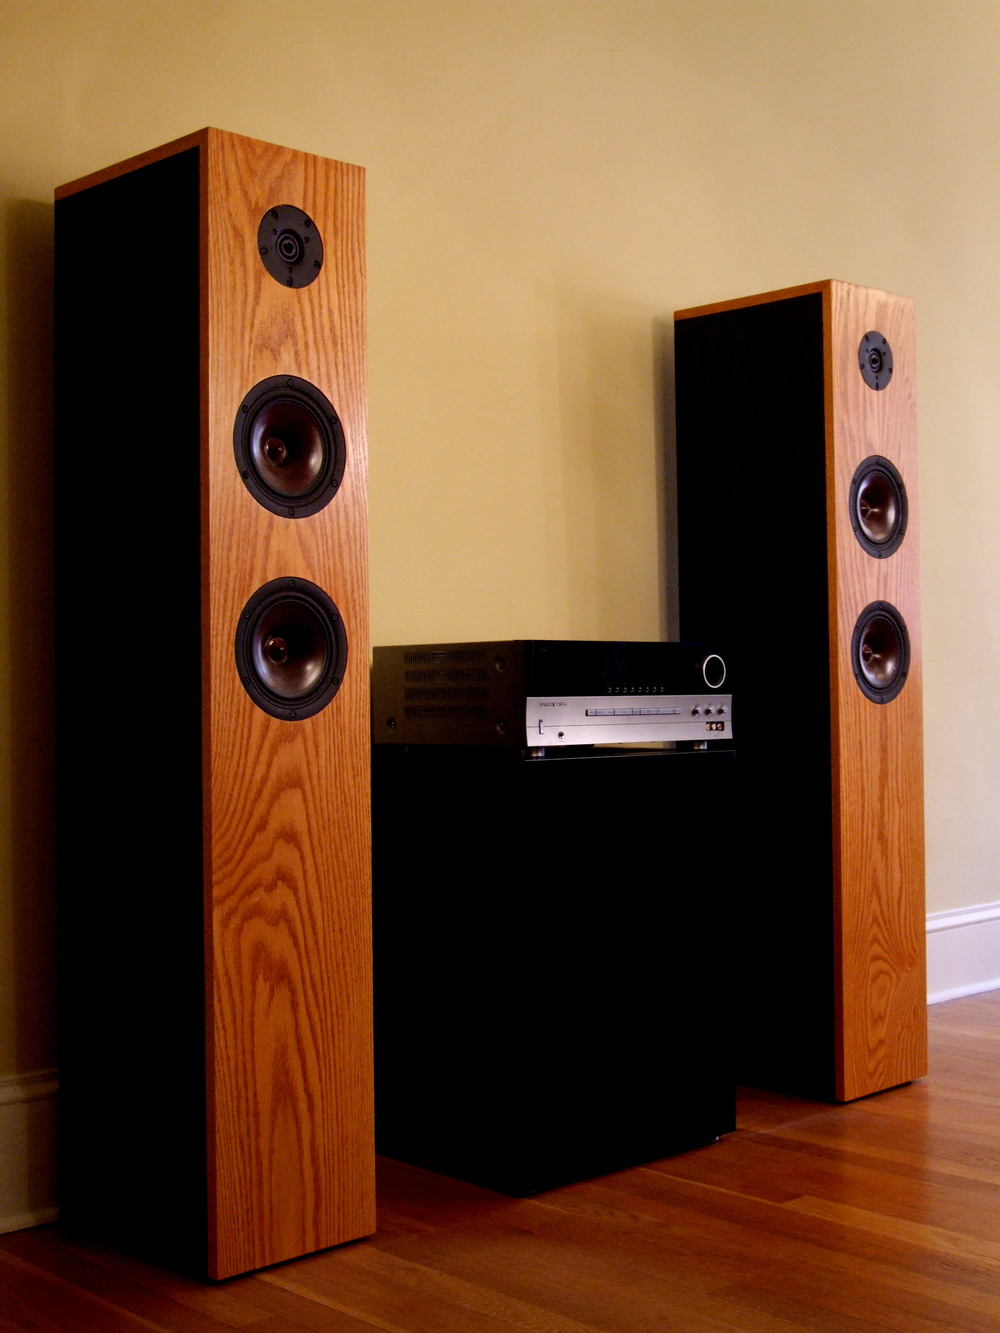 Fuzz Productions  founder wanted a system to deliver crisp mid-range sound and compliment the interior style of their home office. Design features wood-fiber transducers flush-mounted in a handcrafted red oak enclosure. 40Hz-40kHz ±3dB. Dimensions: 26cm (w) x 140cm (h) x 36cm (d).